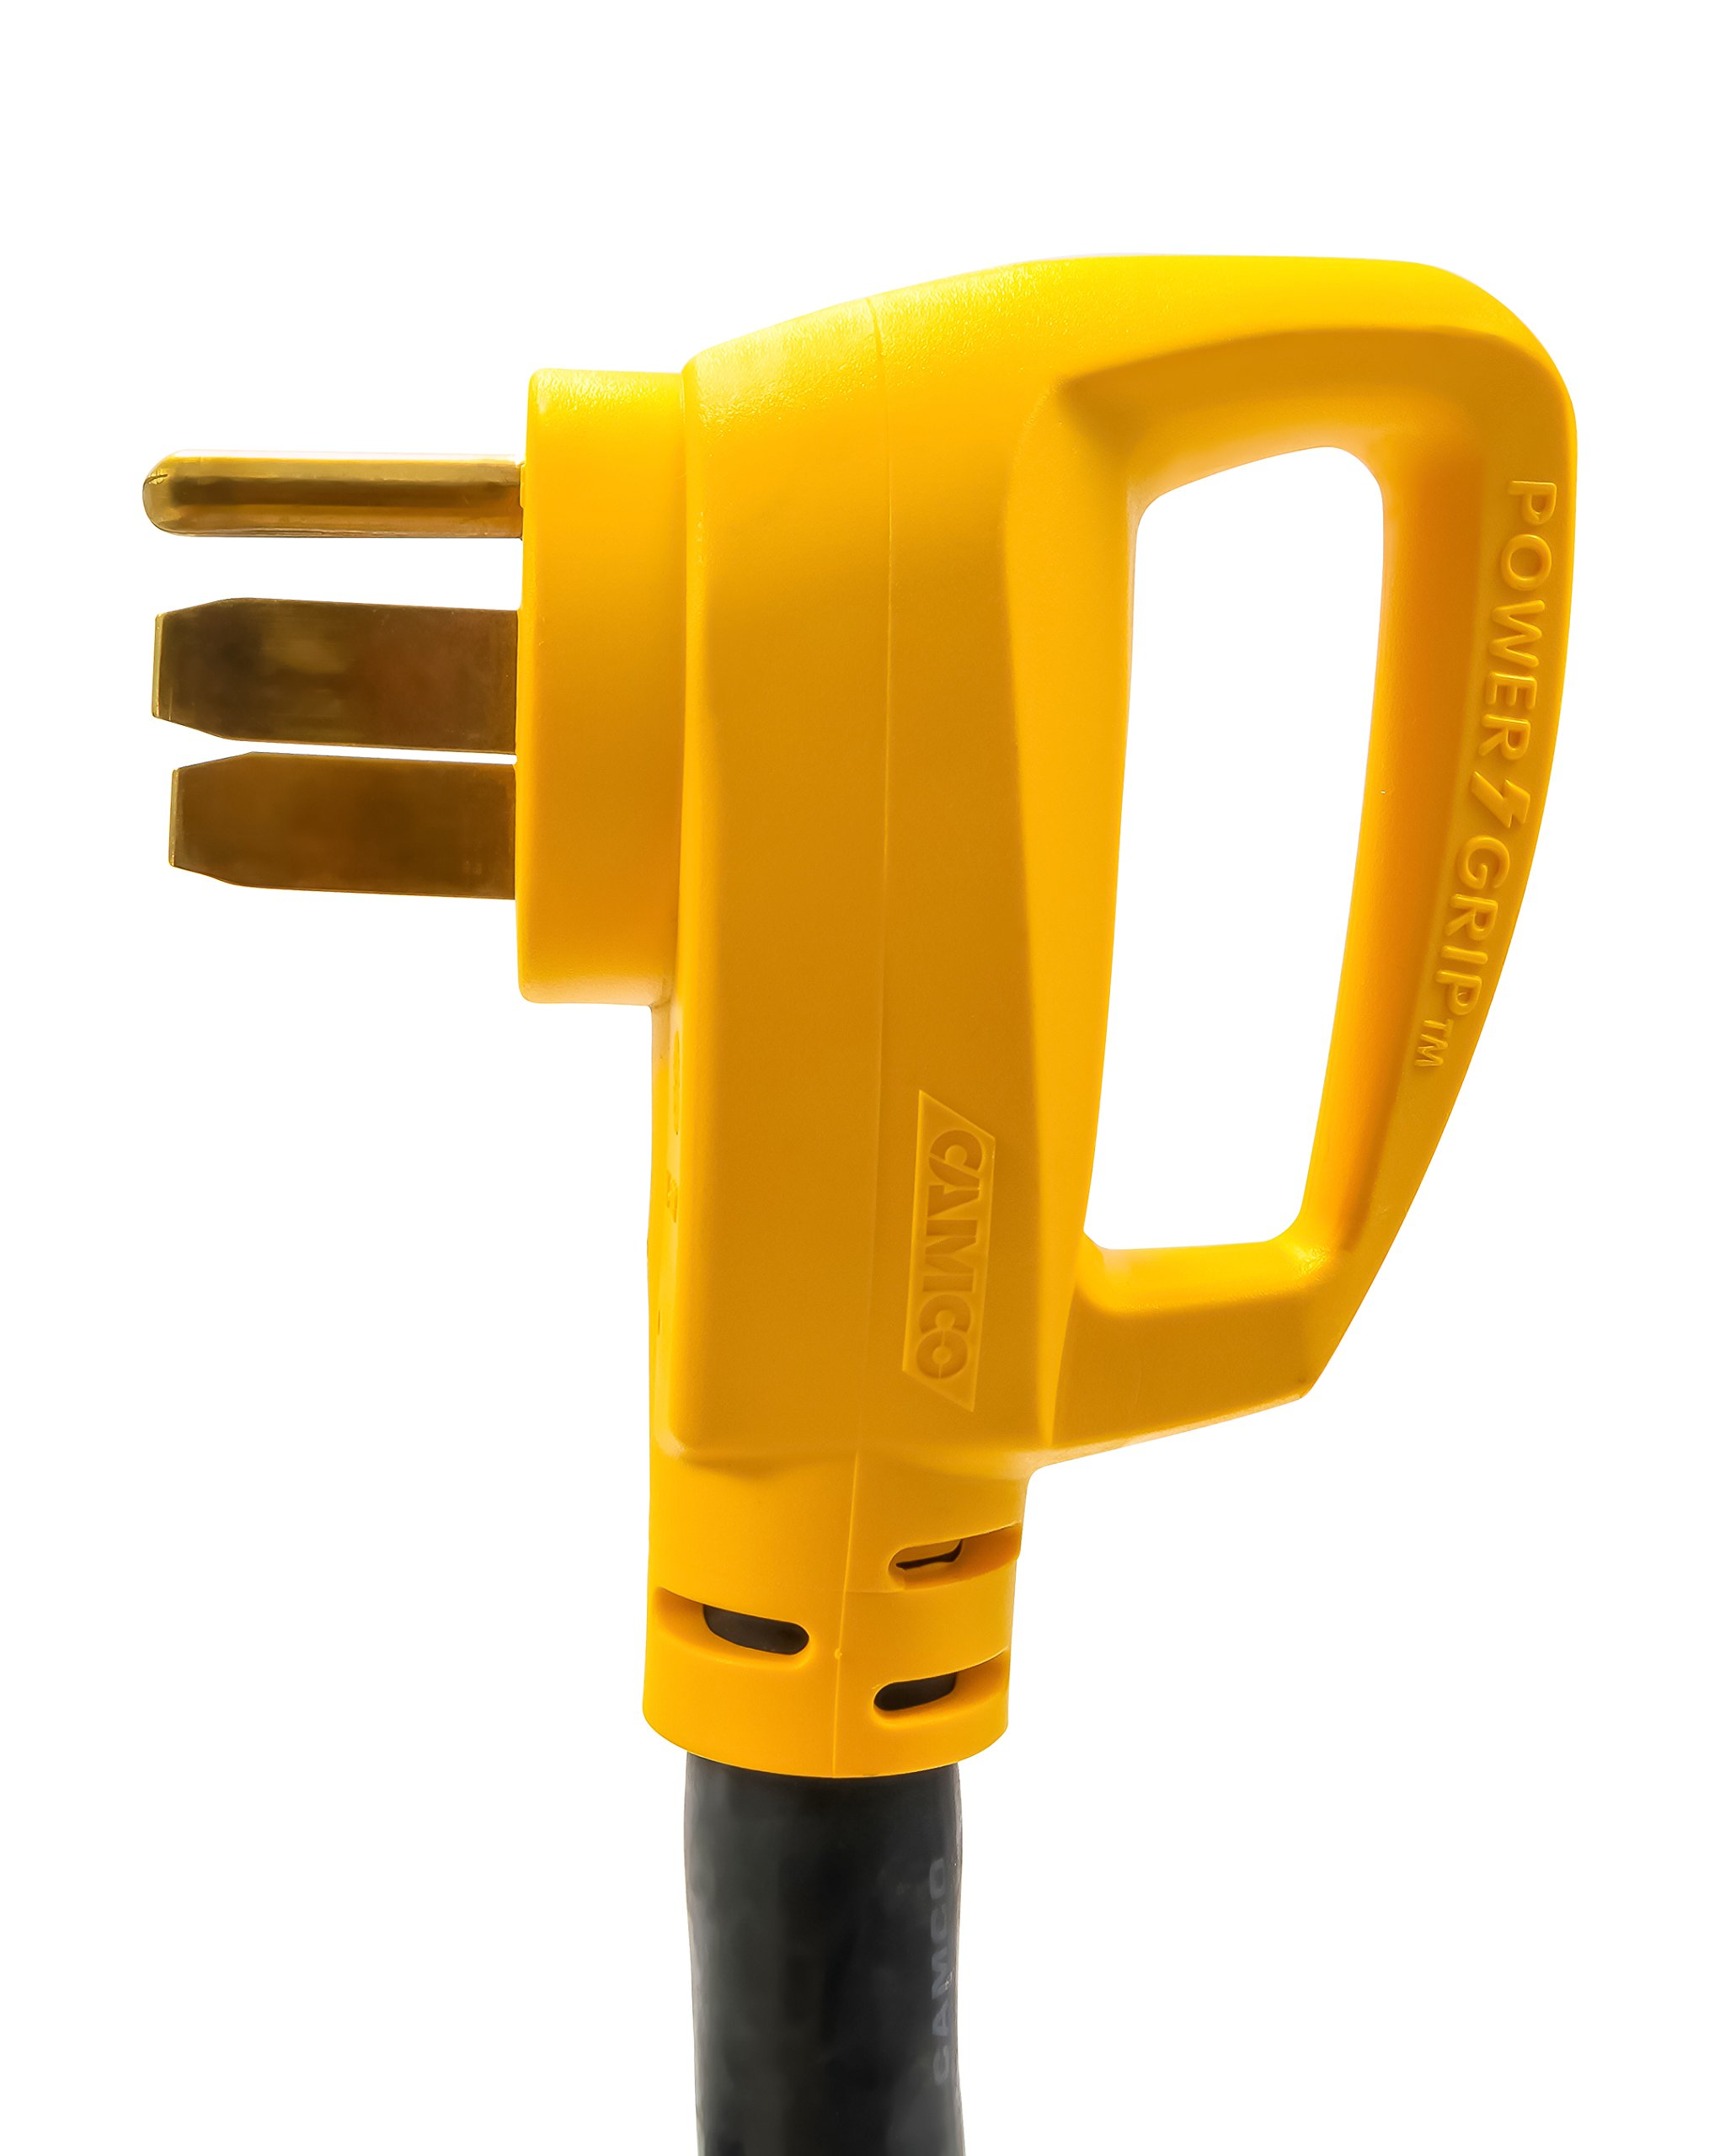 Camco 25 Foot Extension Cord - 50 Amp Standard Male to 50 Amp 90 Degree Female Locking Adapter (55574) by Camco (Image #2)